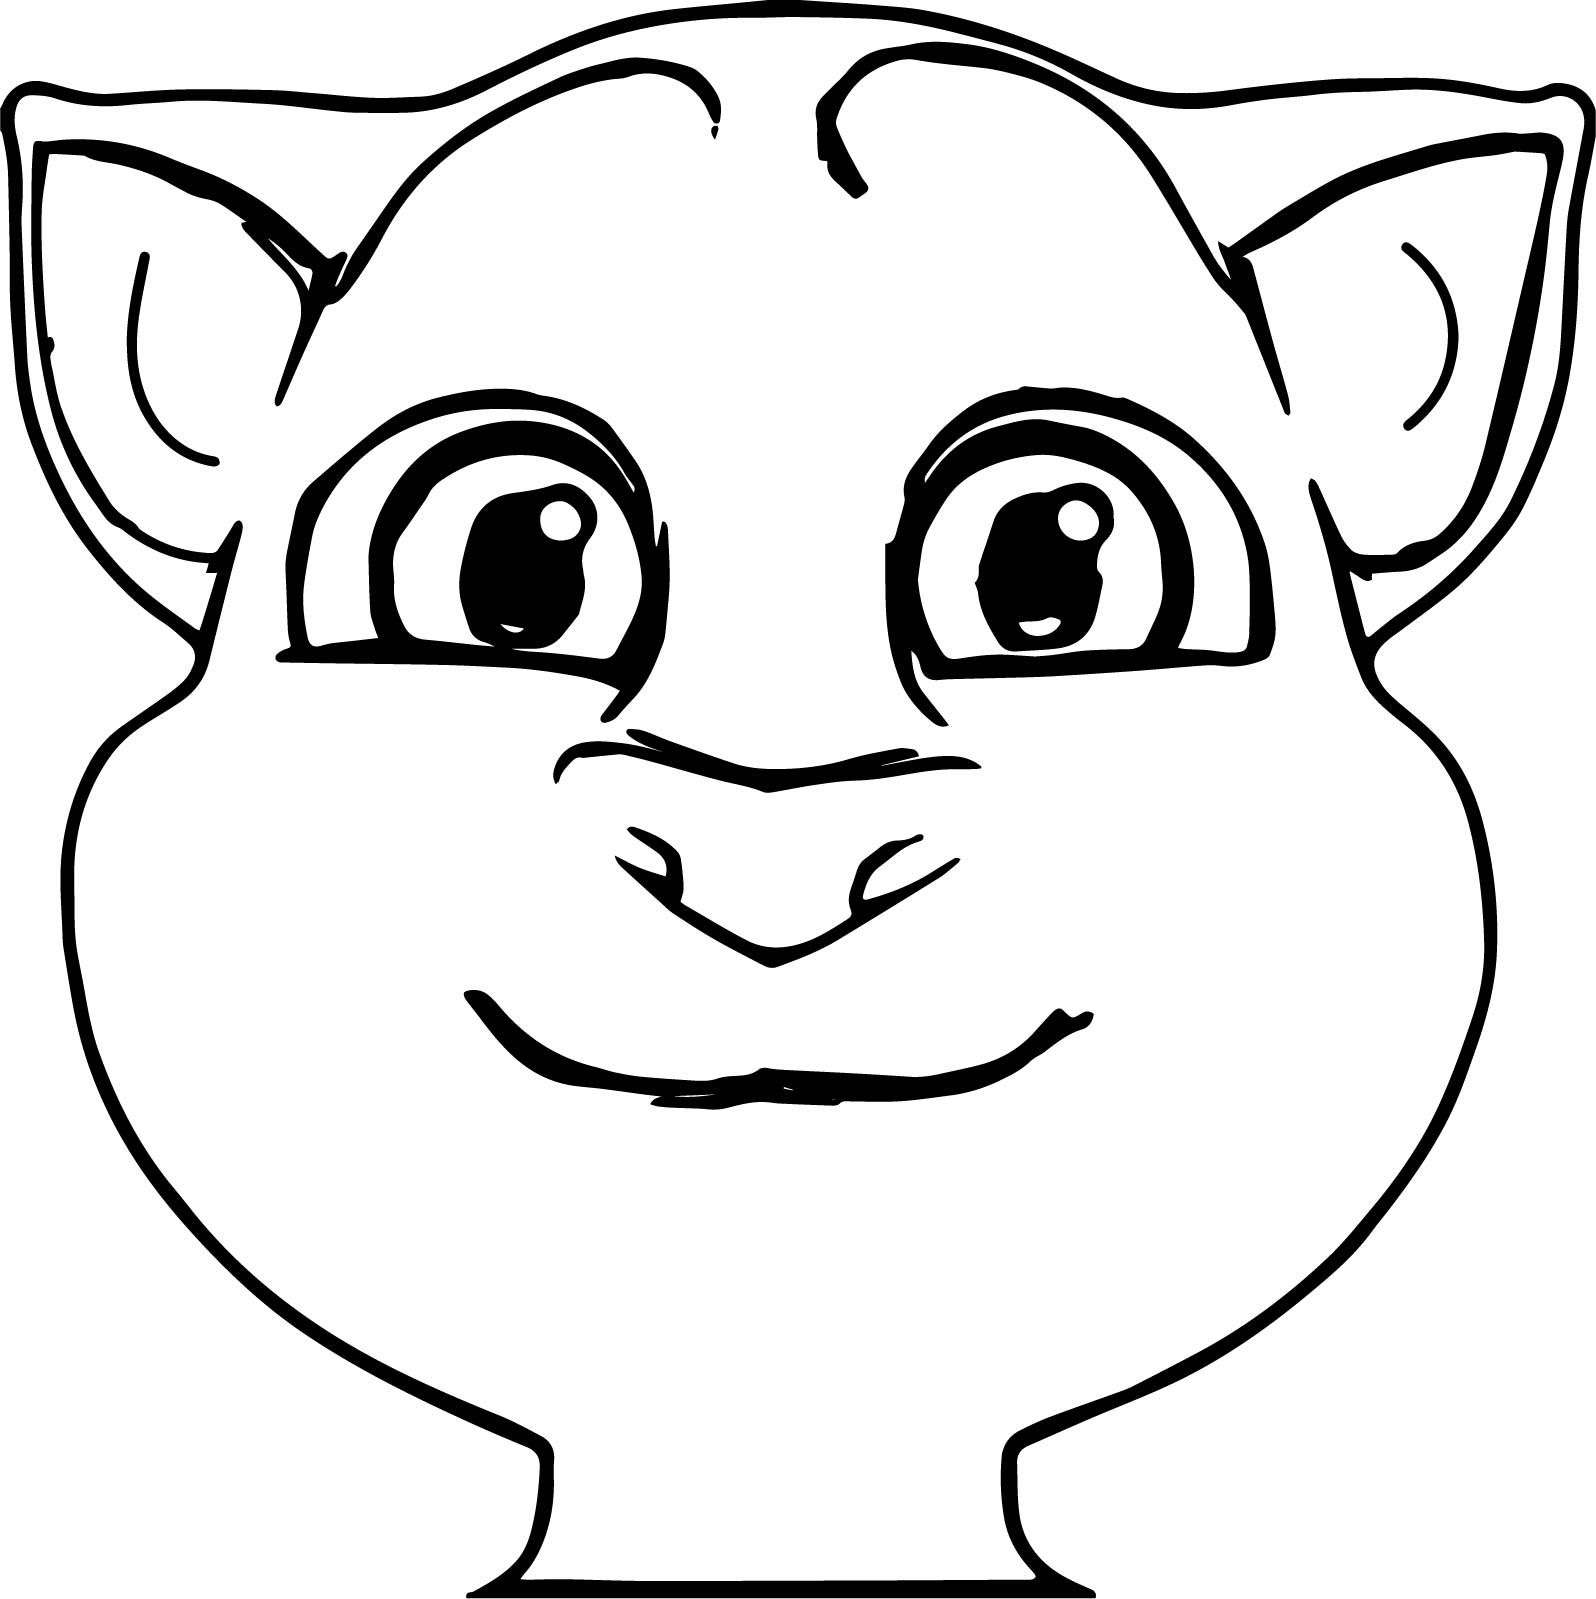 Front Talking Tom Cat Coloring Page In 2020 Cat Coloring Page Coloring Pages Talking Tom